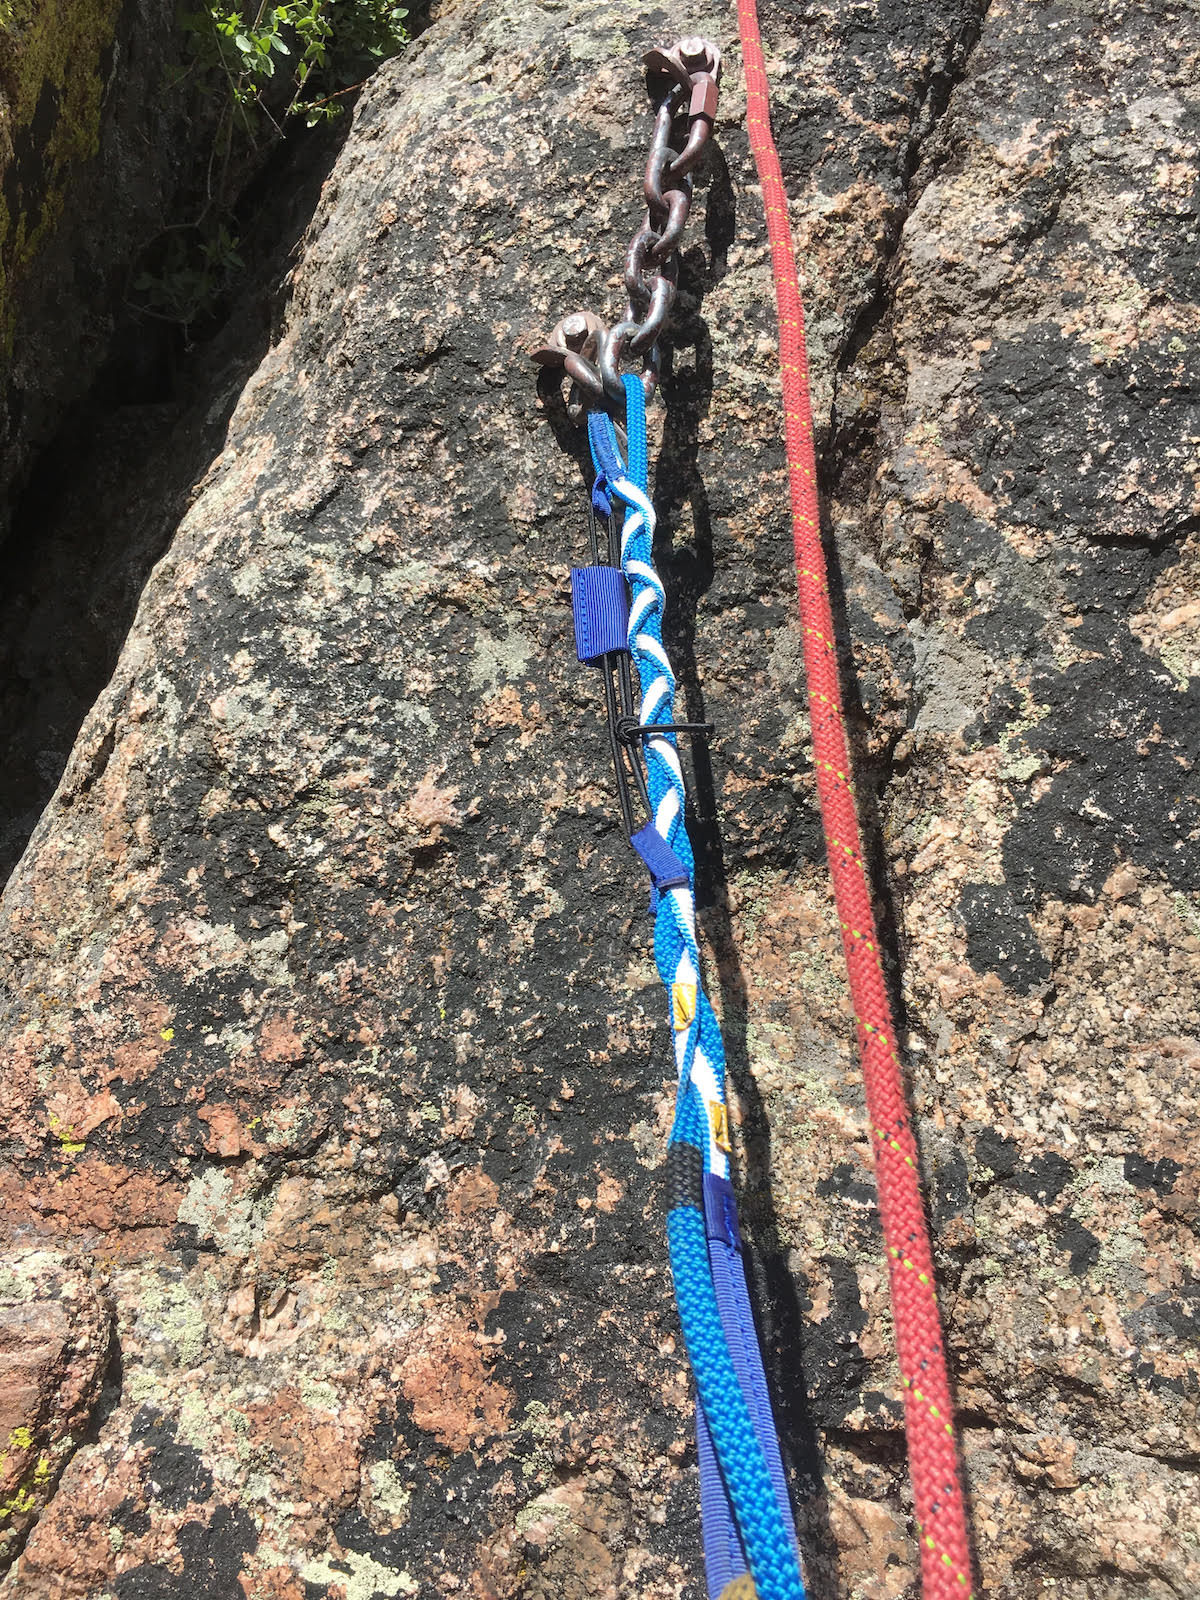 The second rappel station on the Pink Face was free-hanging and was perfectly ideal for retrieving ropes after a rappel. Again, the red rope was used as a backup. [Photo] Derek Franz